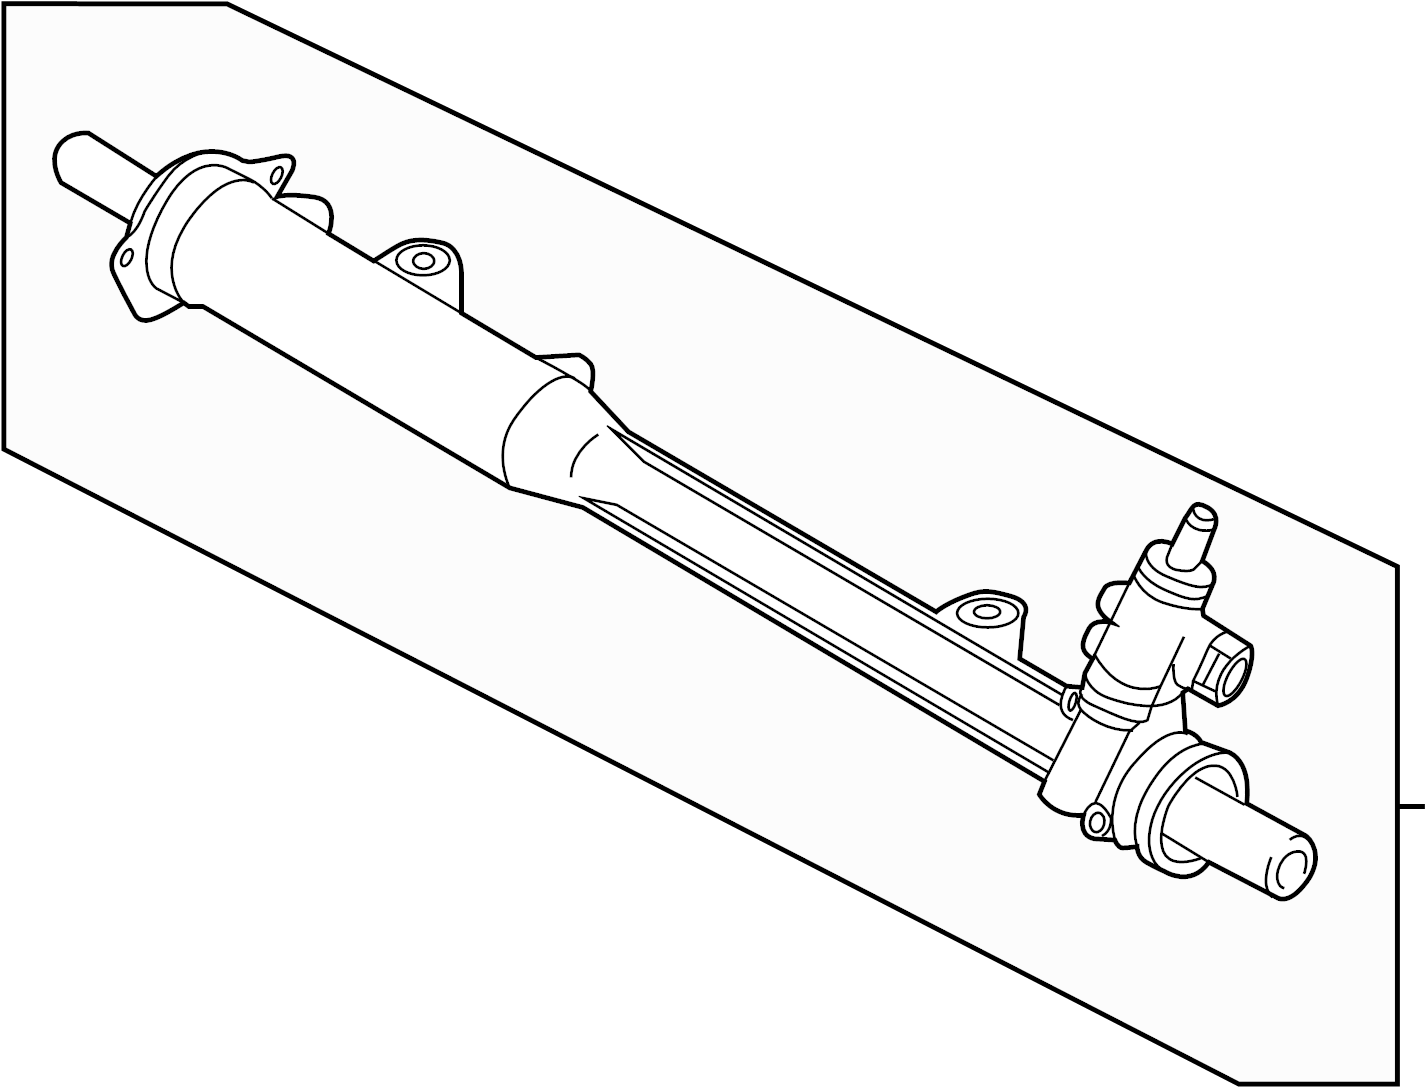 Volkswagen Touareg Gear Assy Rack And Pinion Assembly Steering Gear